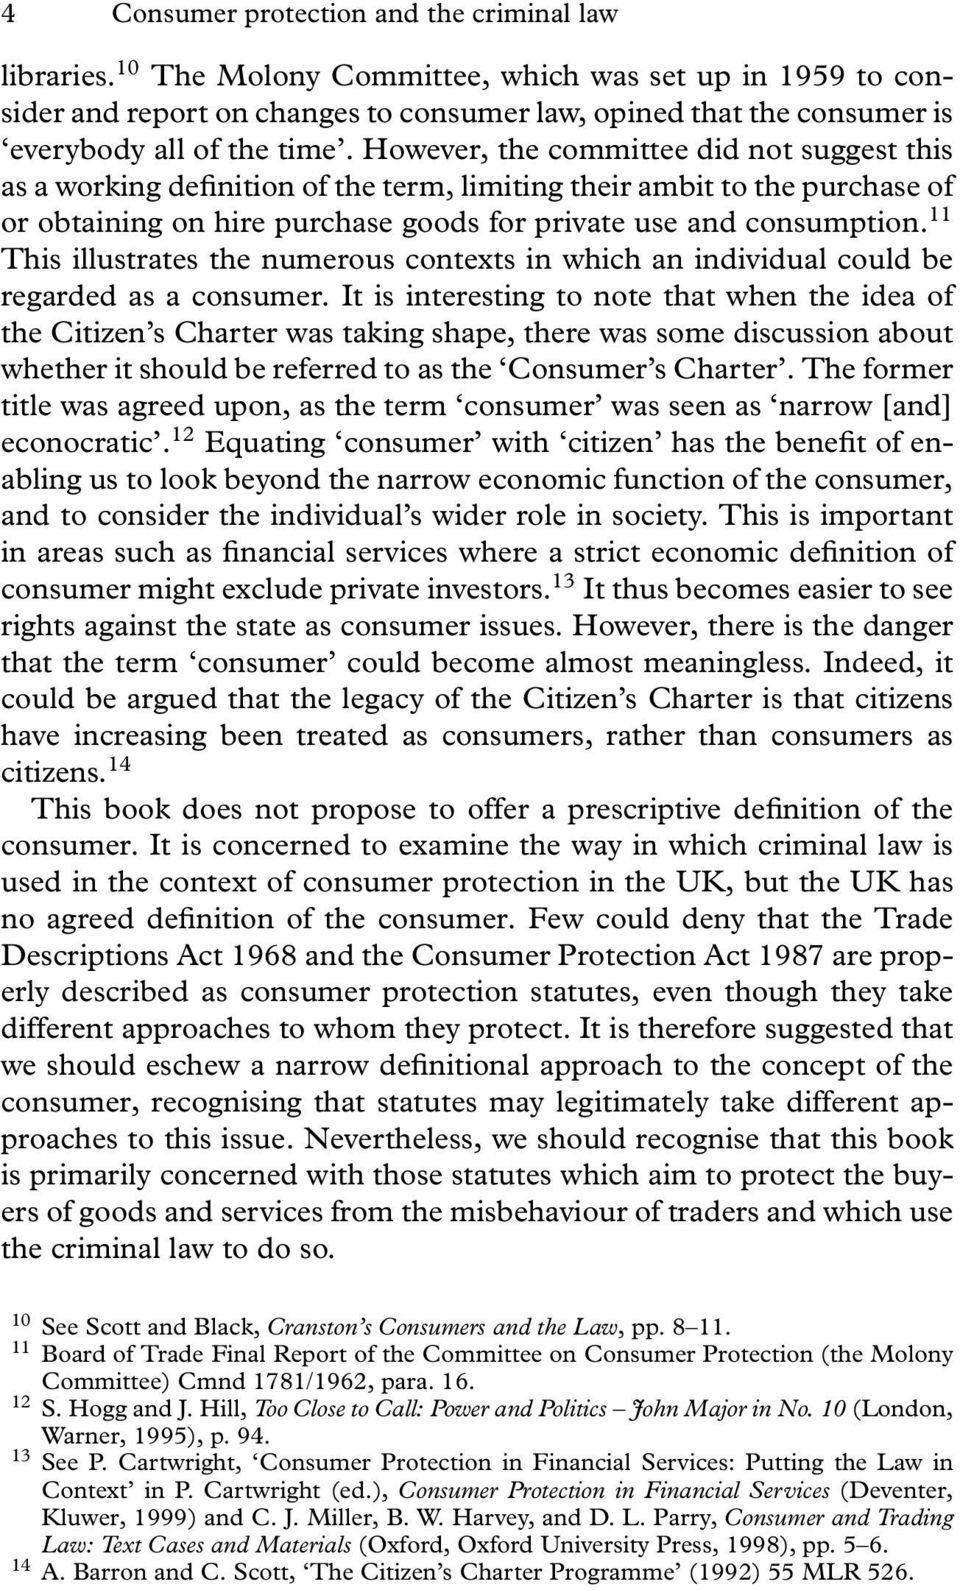 However, the committee did not suggest this as a working definition of the term, limiting their ambit to the purchase of or obtaining on hire purchase goods for private use and consumption.